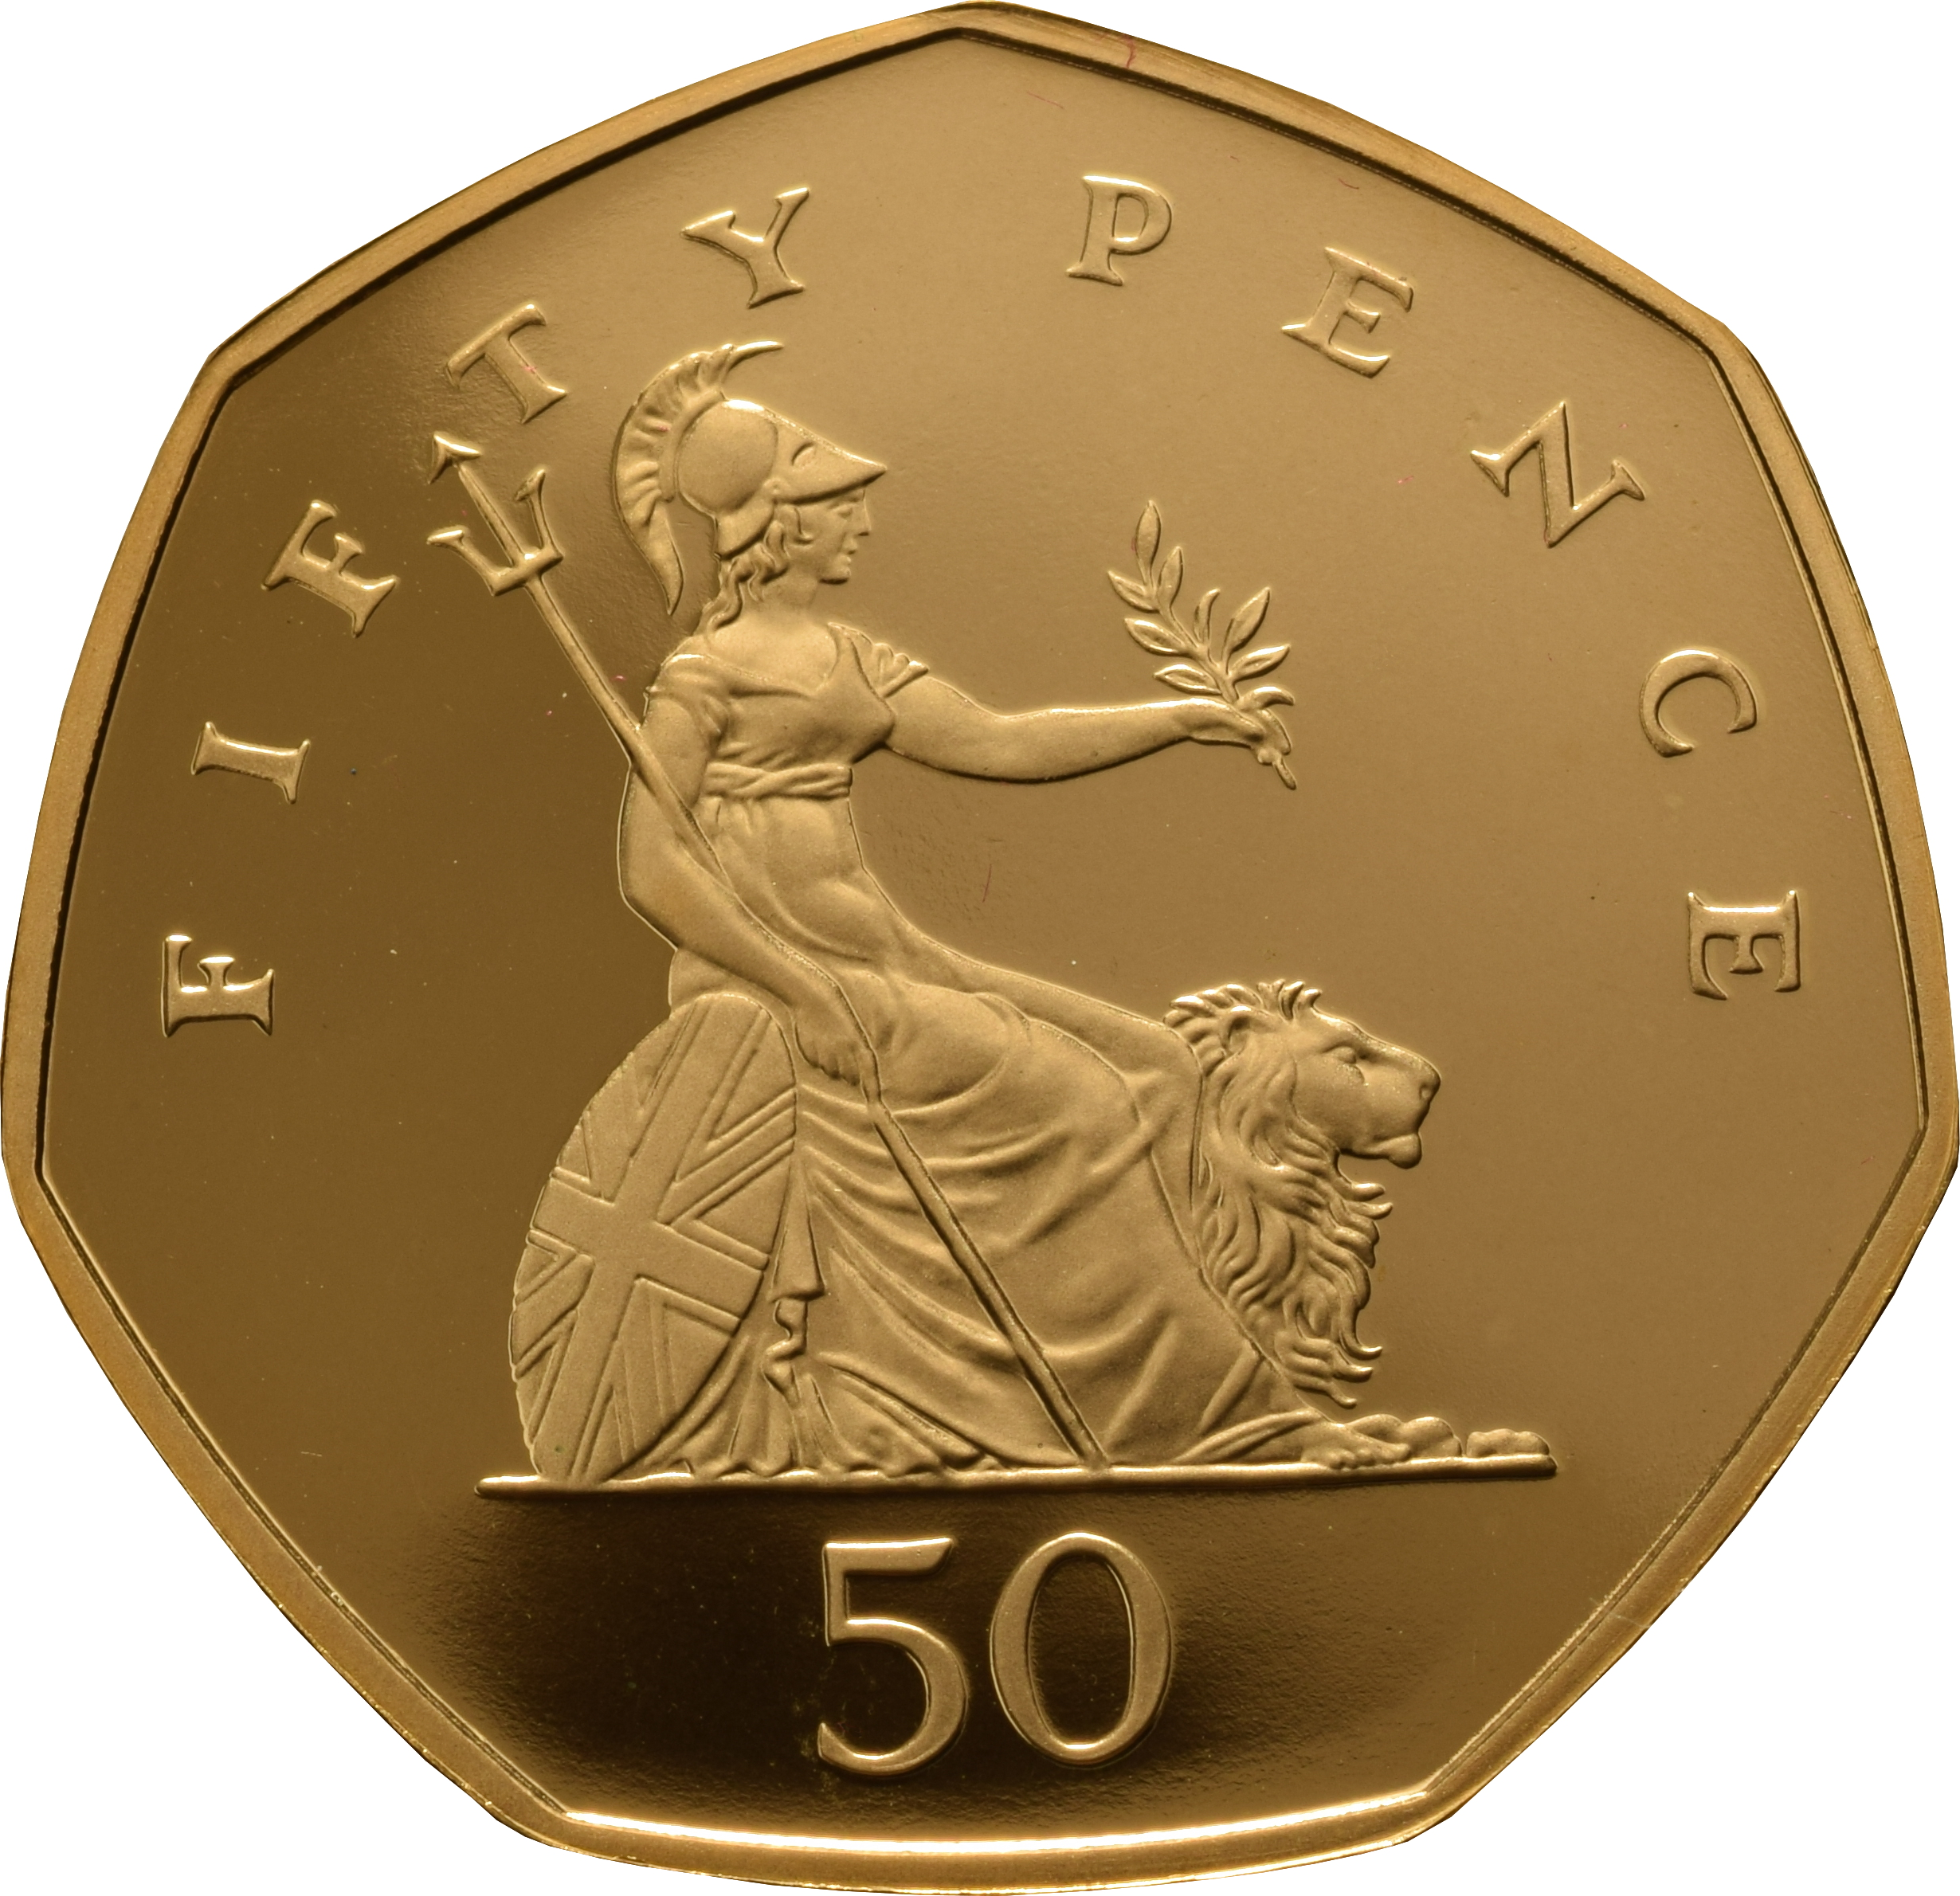 50p Gold Coins Buy Gold Fifty Pence Pieces At